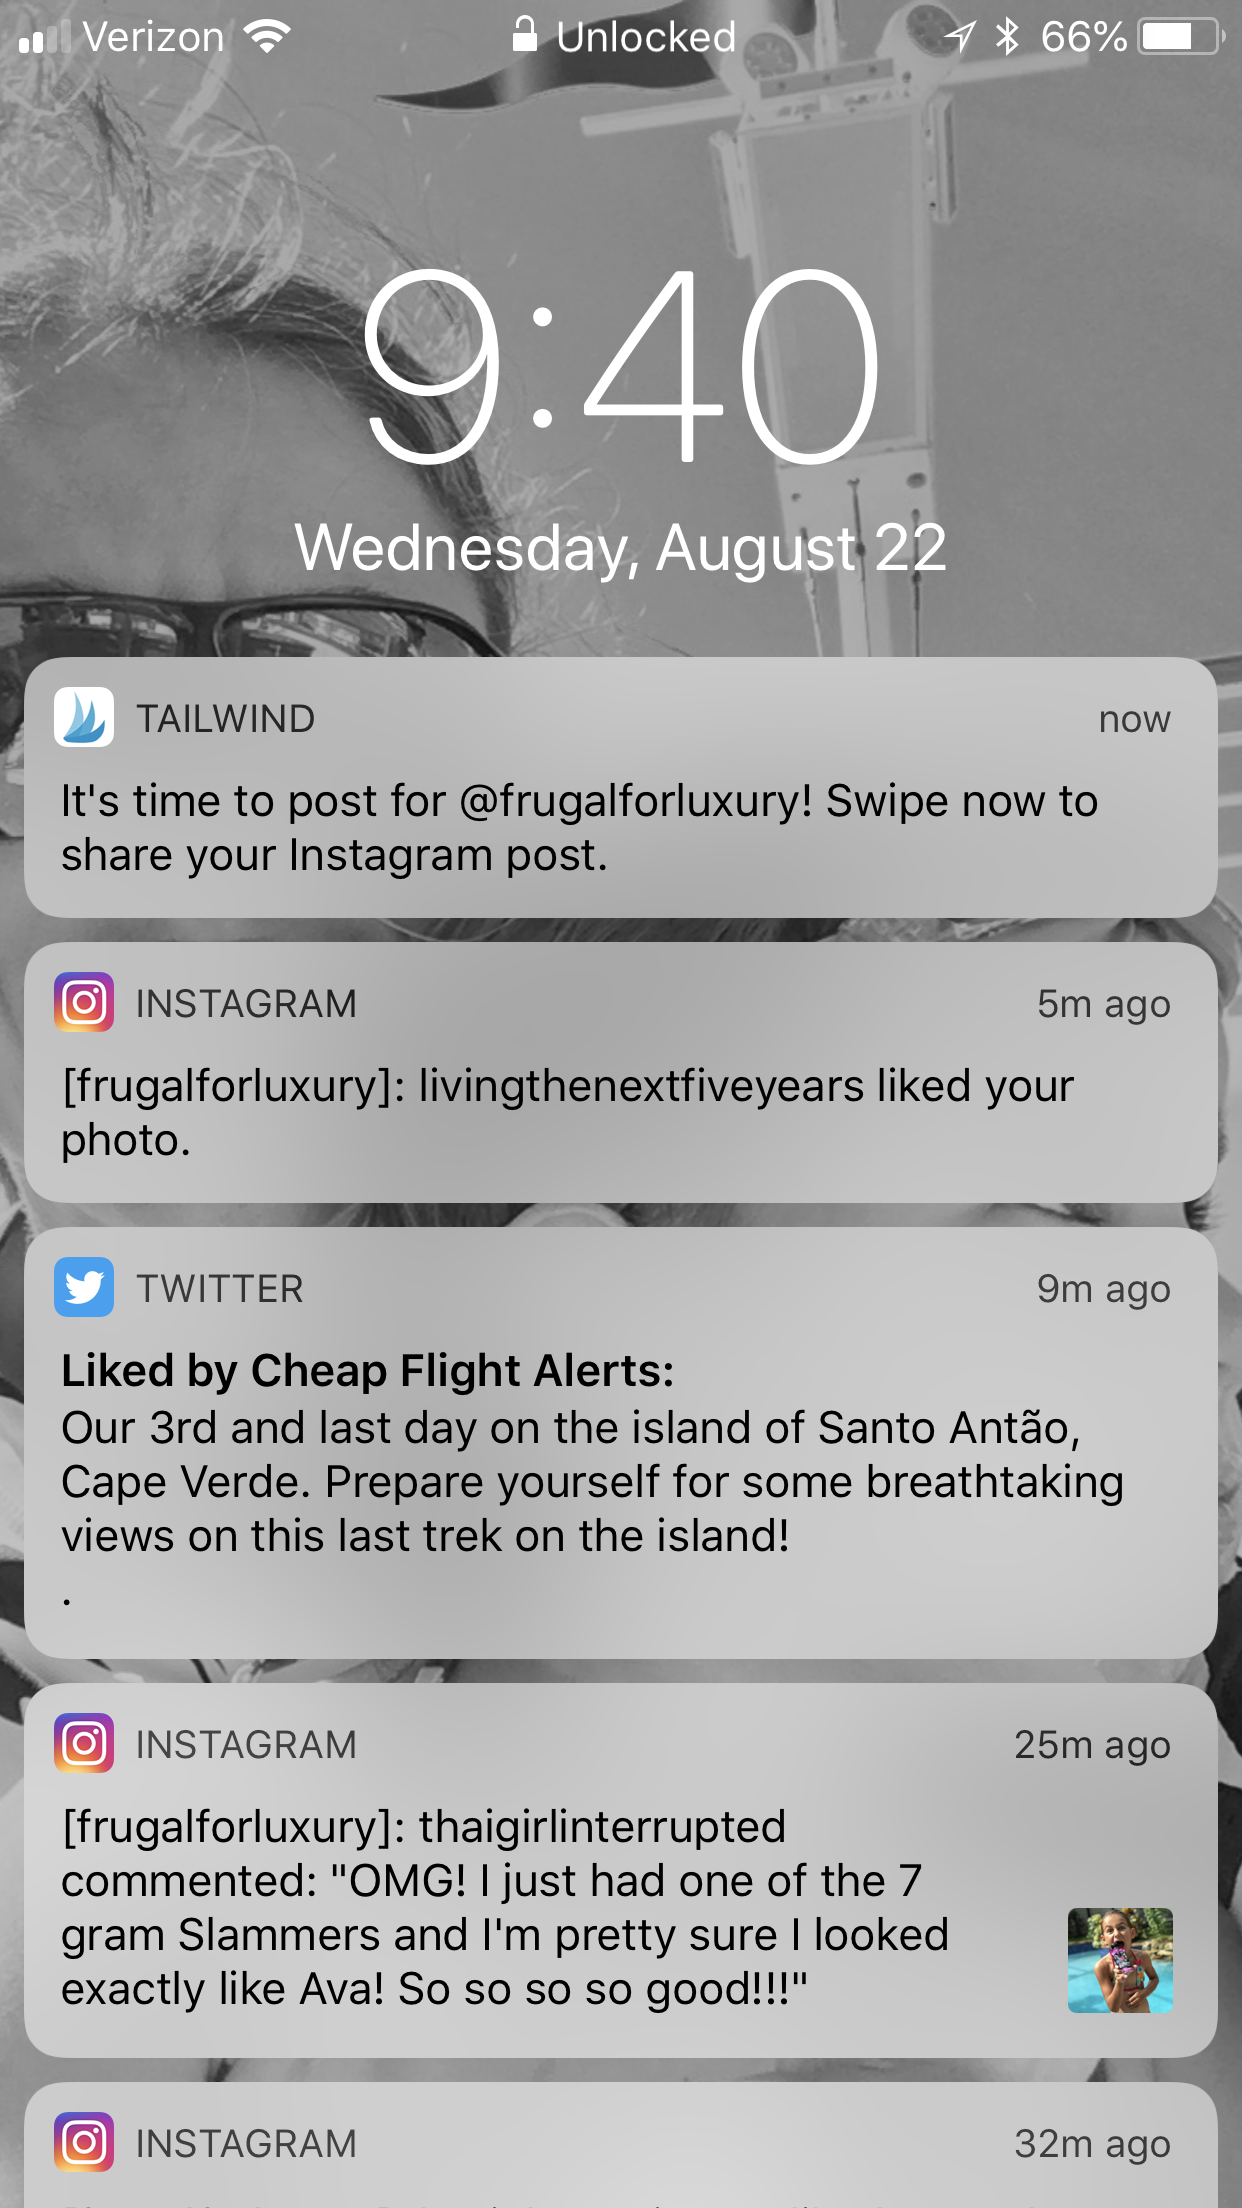 Tailwind Notification Reminders #Instagram #Tailwind #InstagramGrowth #BloggingTips